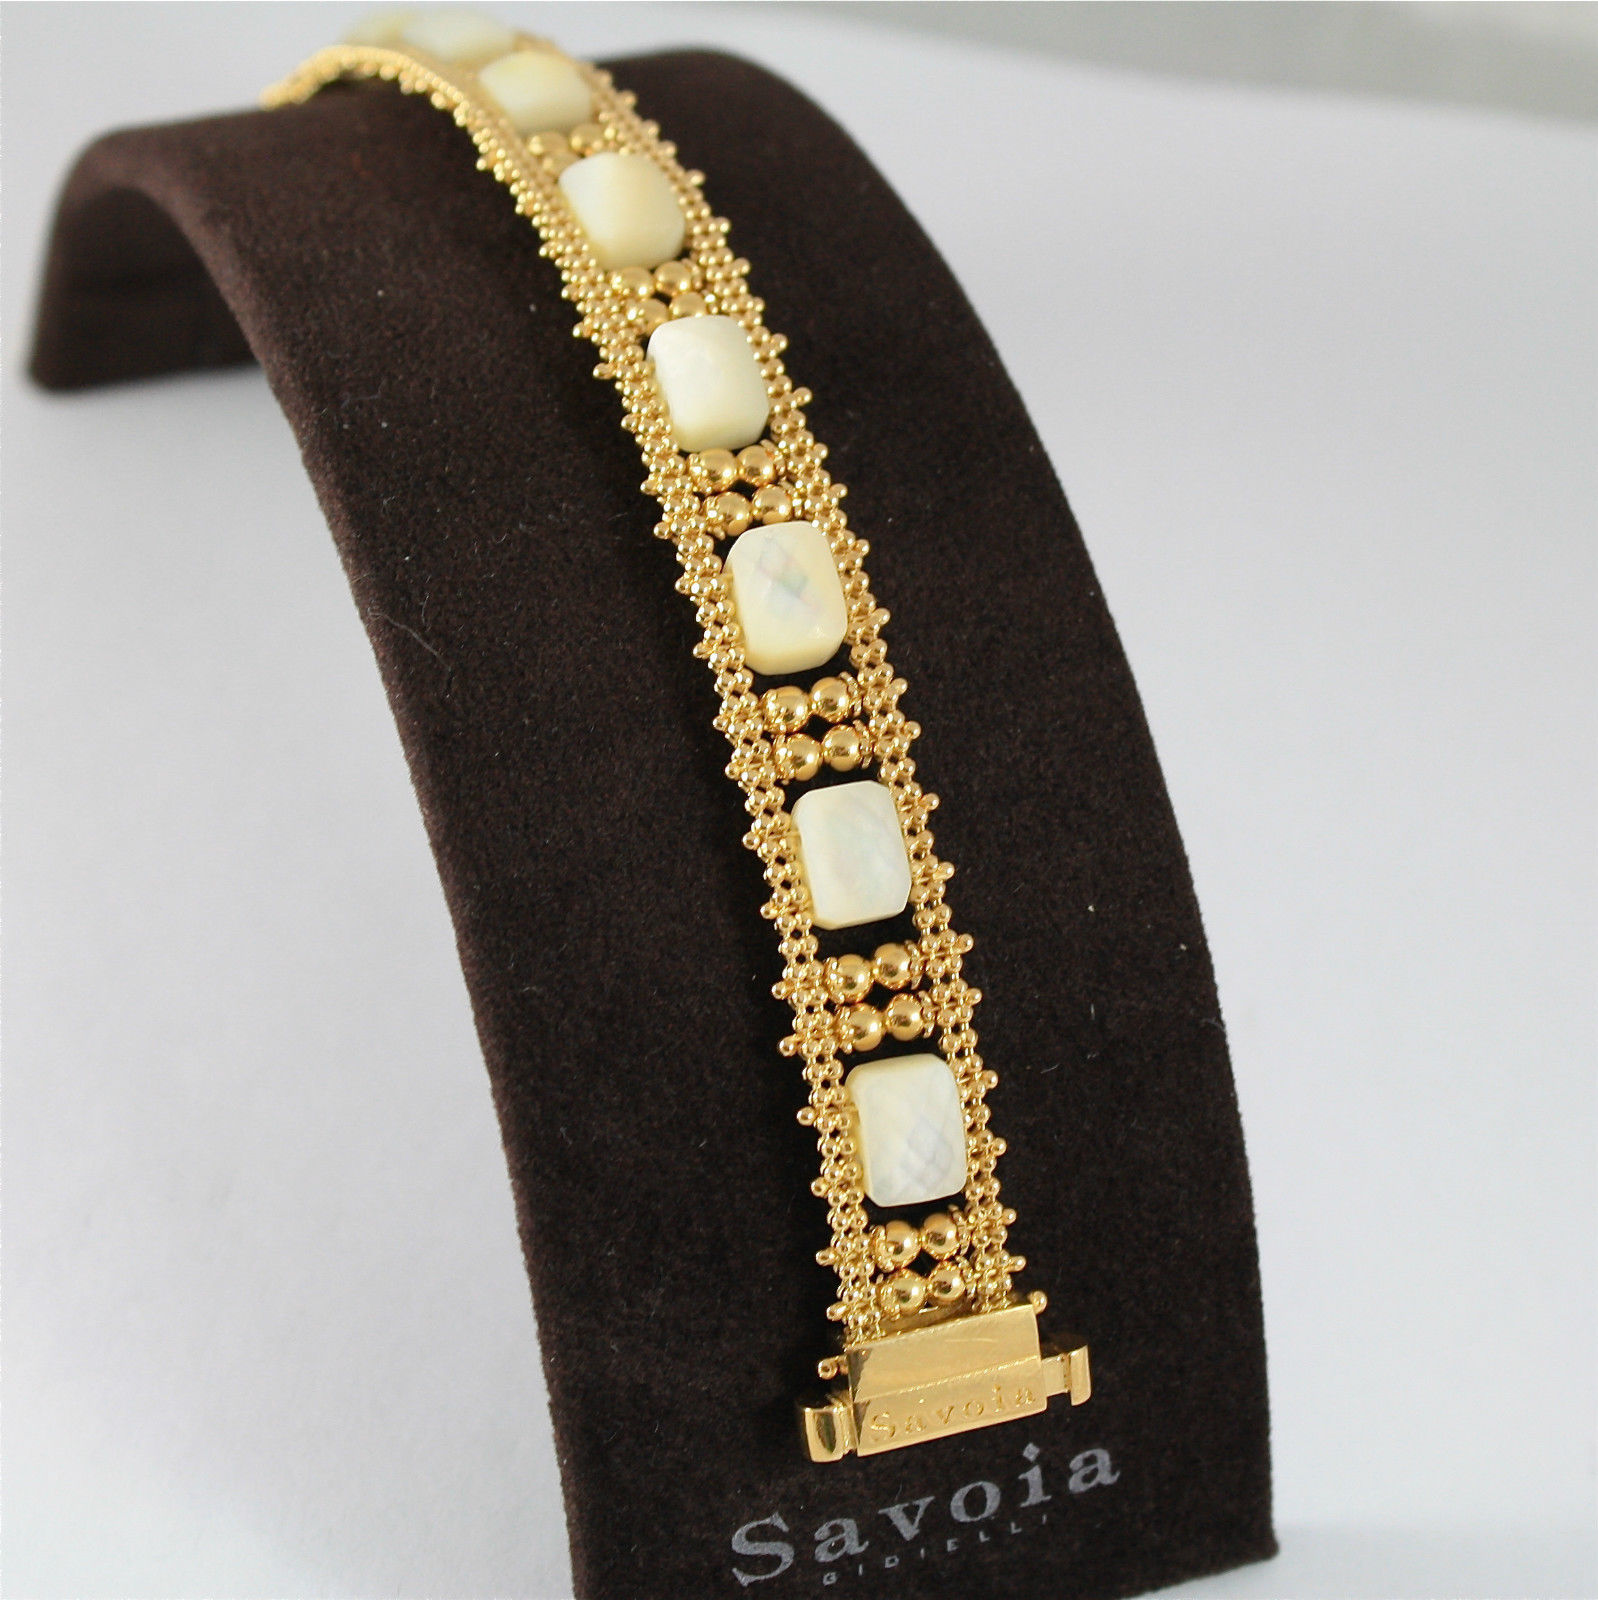 925 SILVER BRACELET, GOLD PL, MOTHER OF PEARL, MADE IN ITALY BY SAVOIA JEWELS.